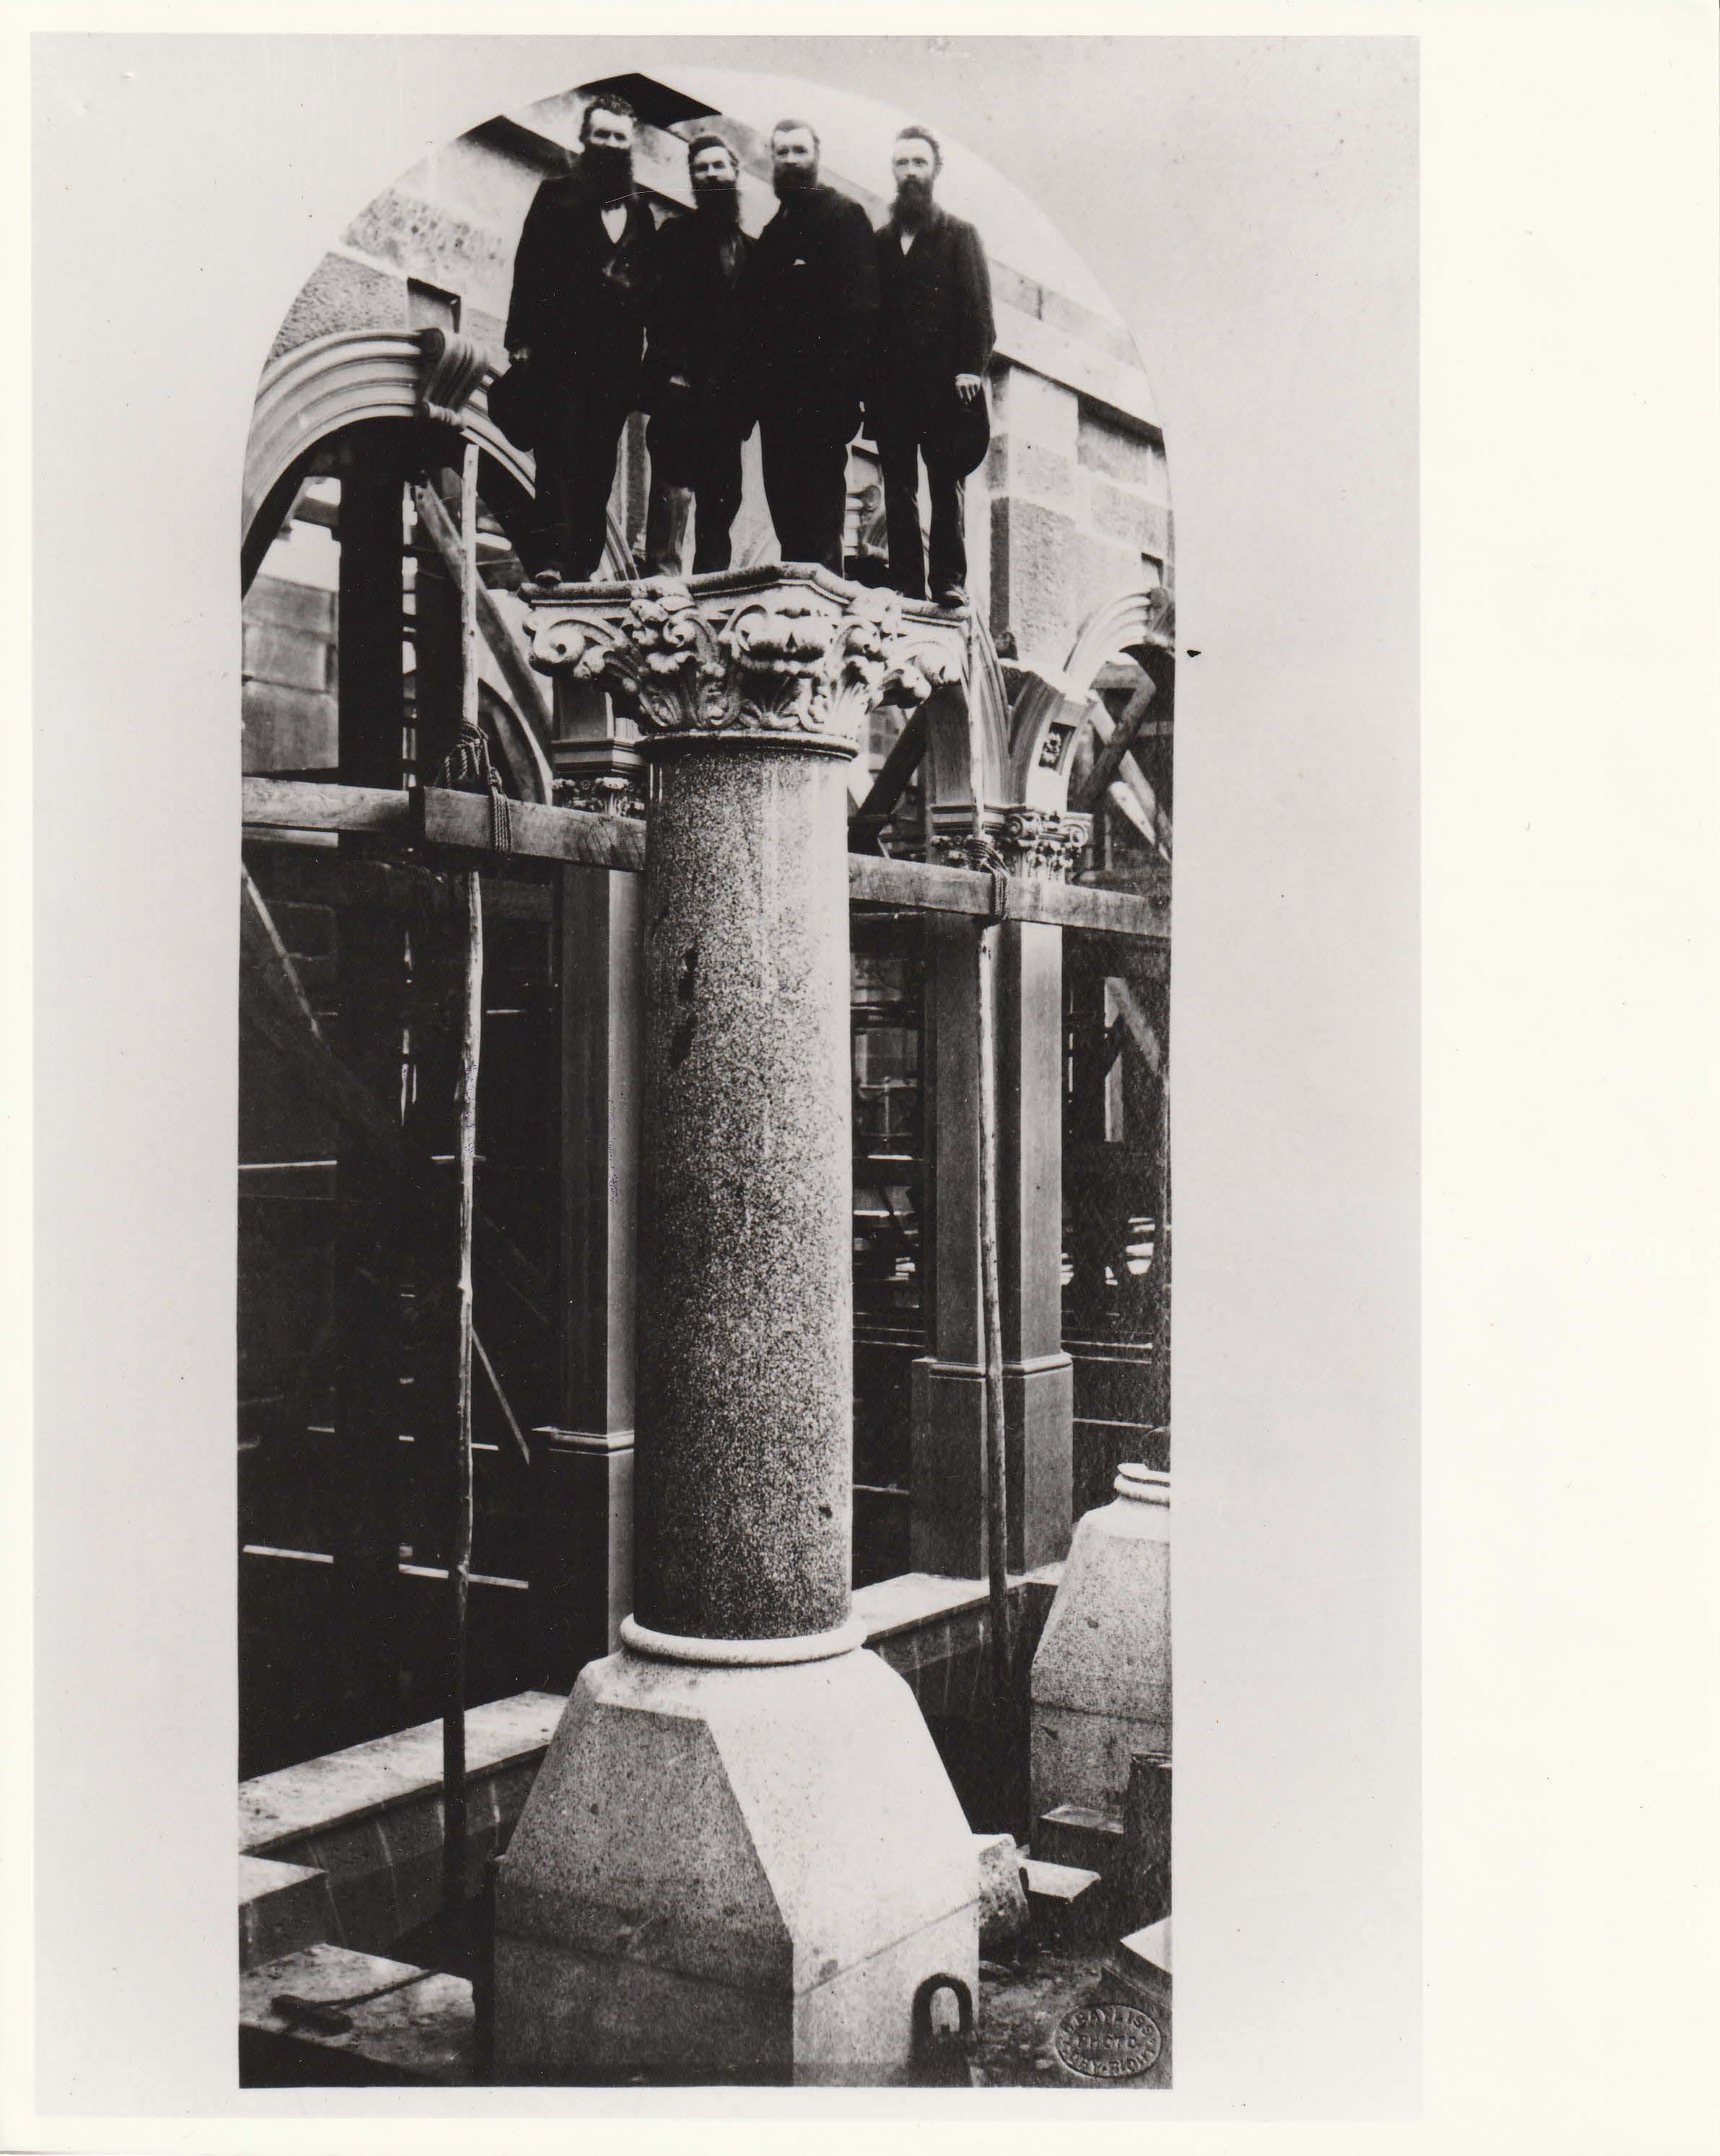 Thomas, William, Alexander and Andrew McCredie atop a GPO pillar